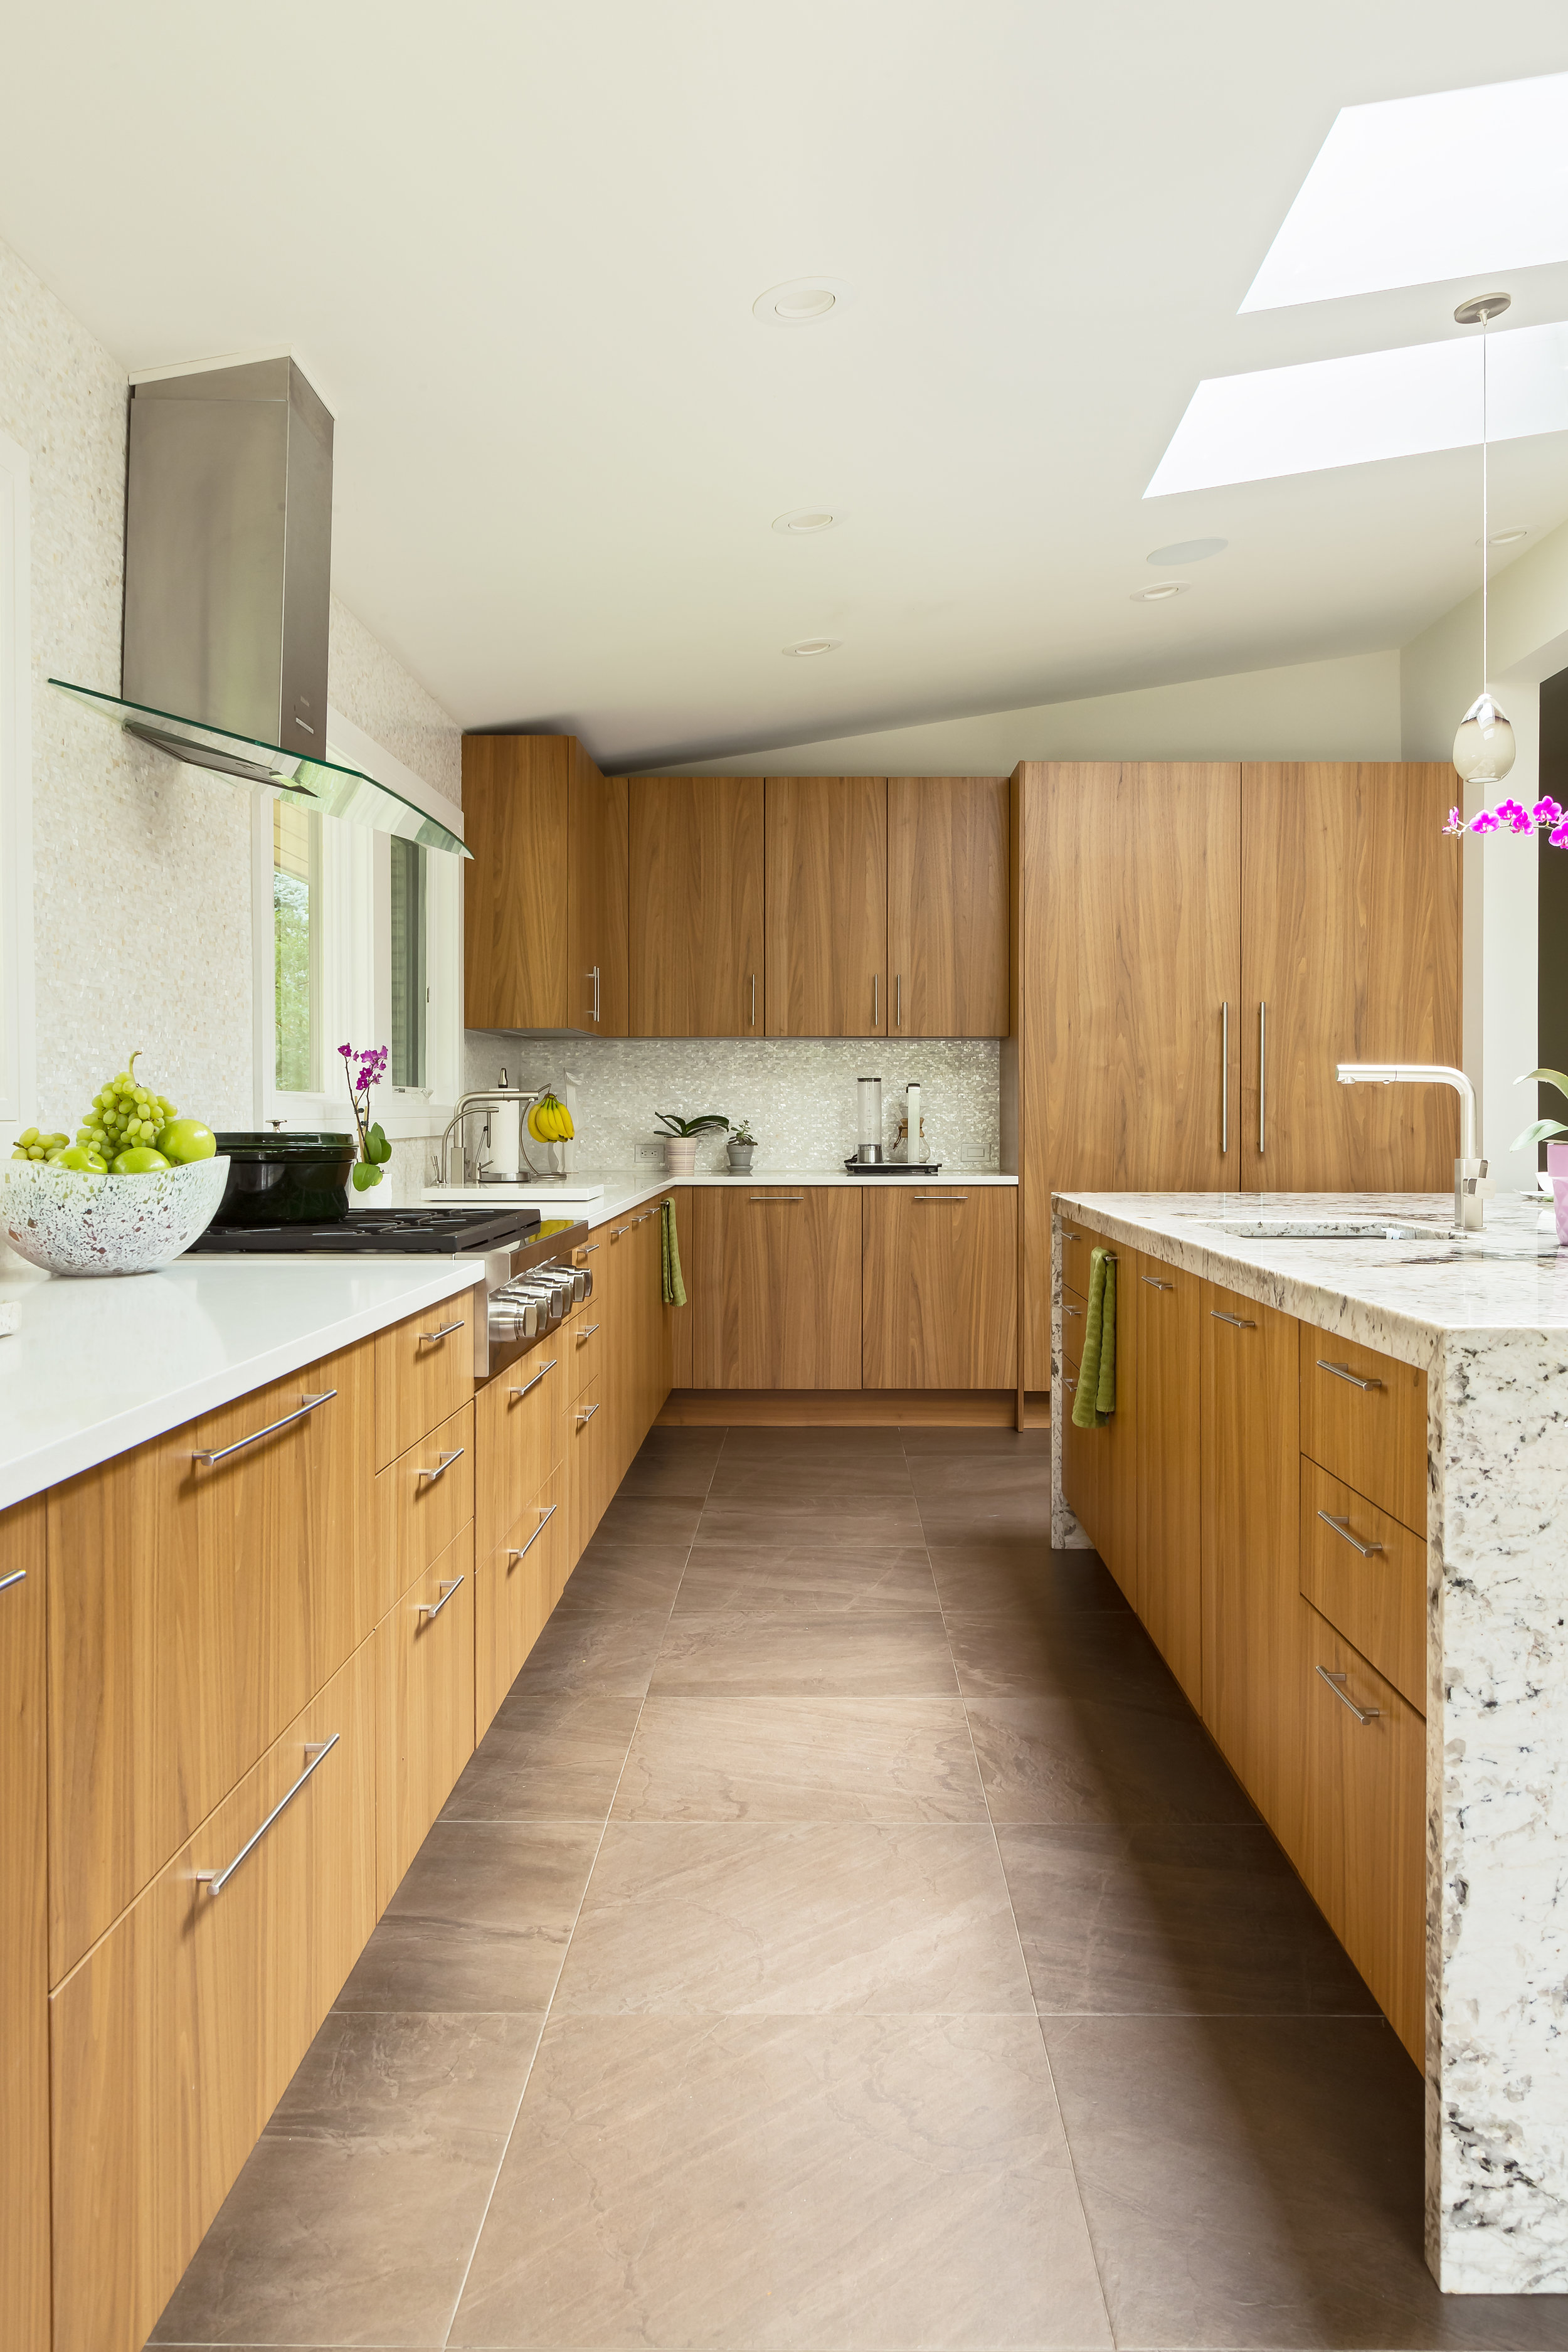 Contemporary style kitchen with tiled floor